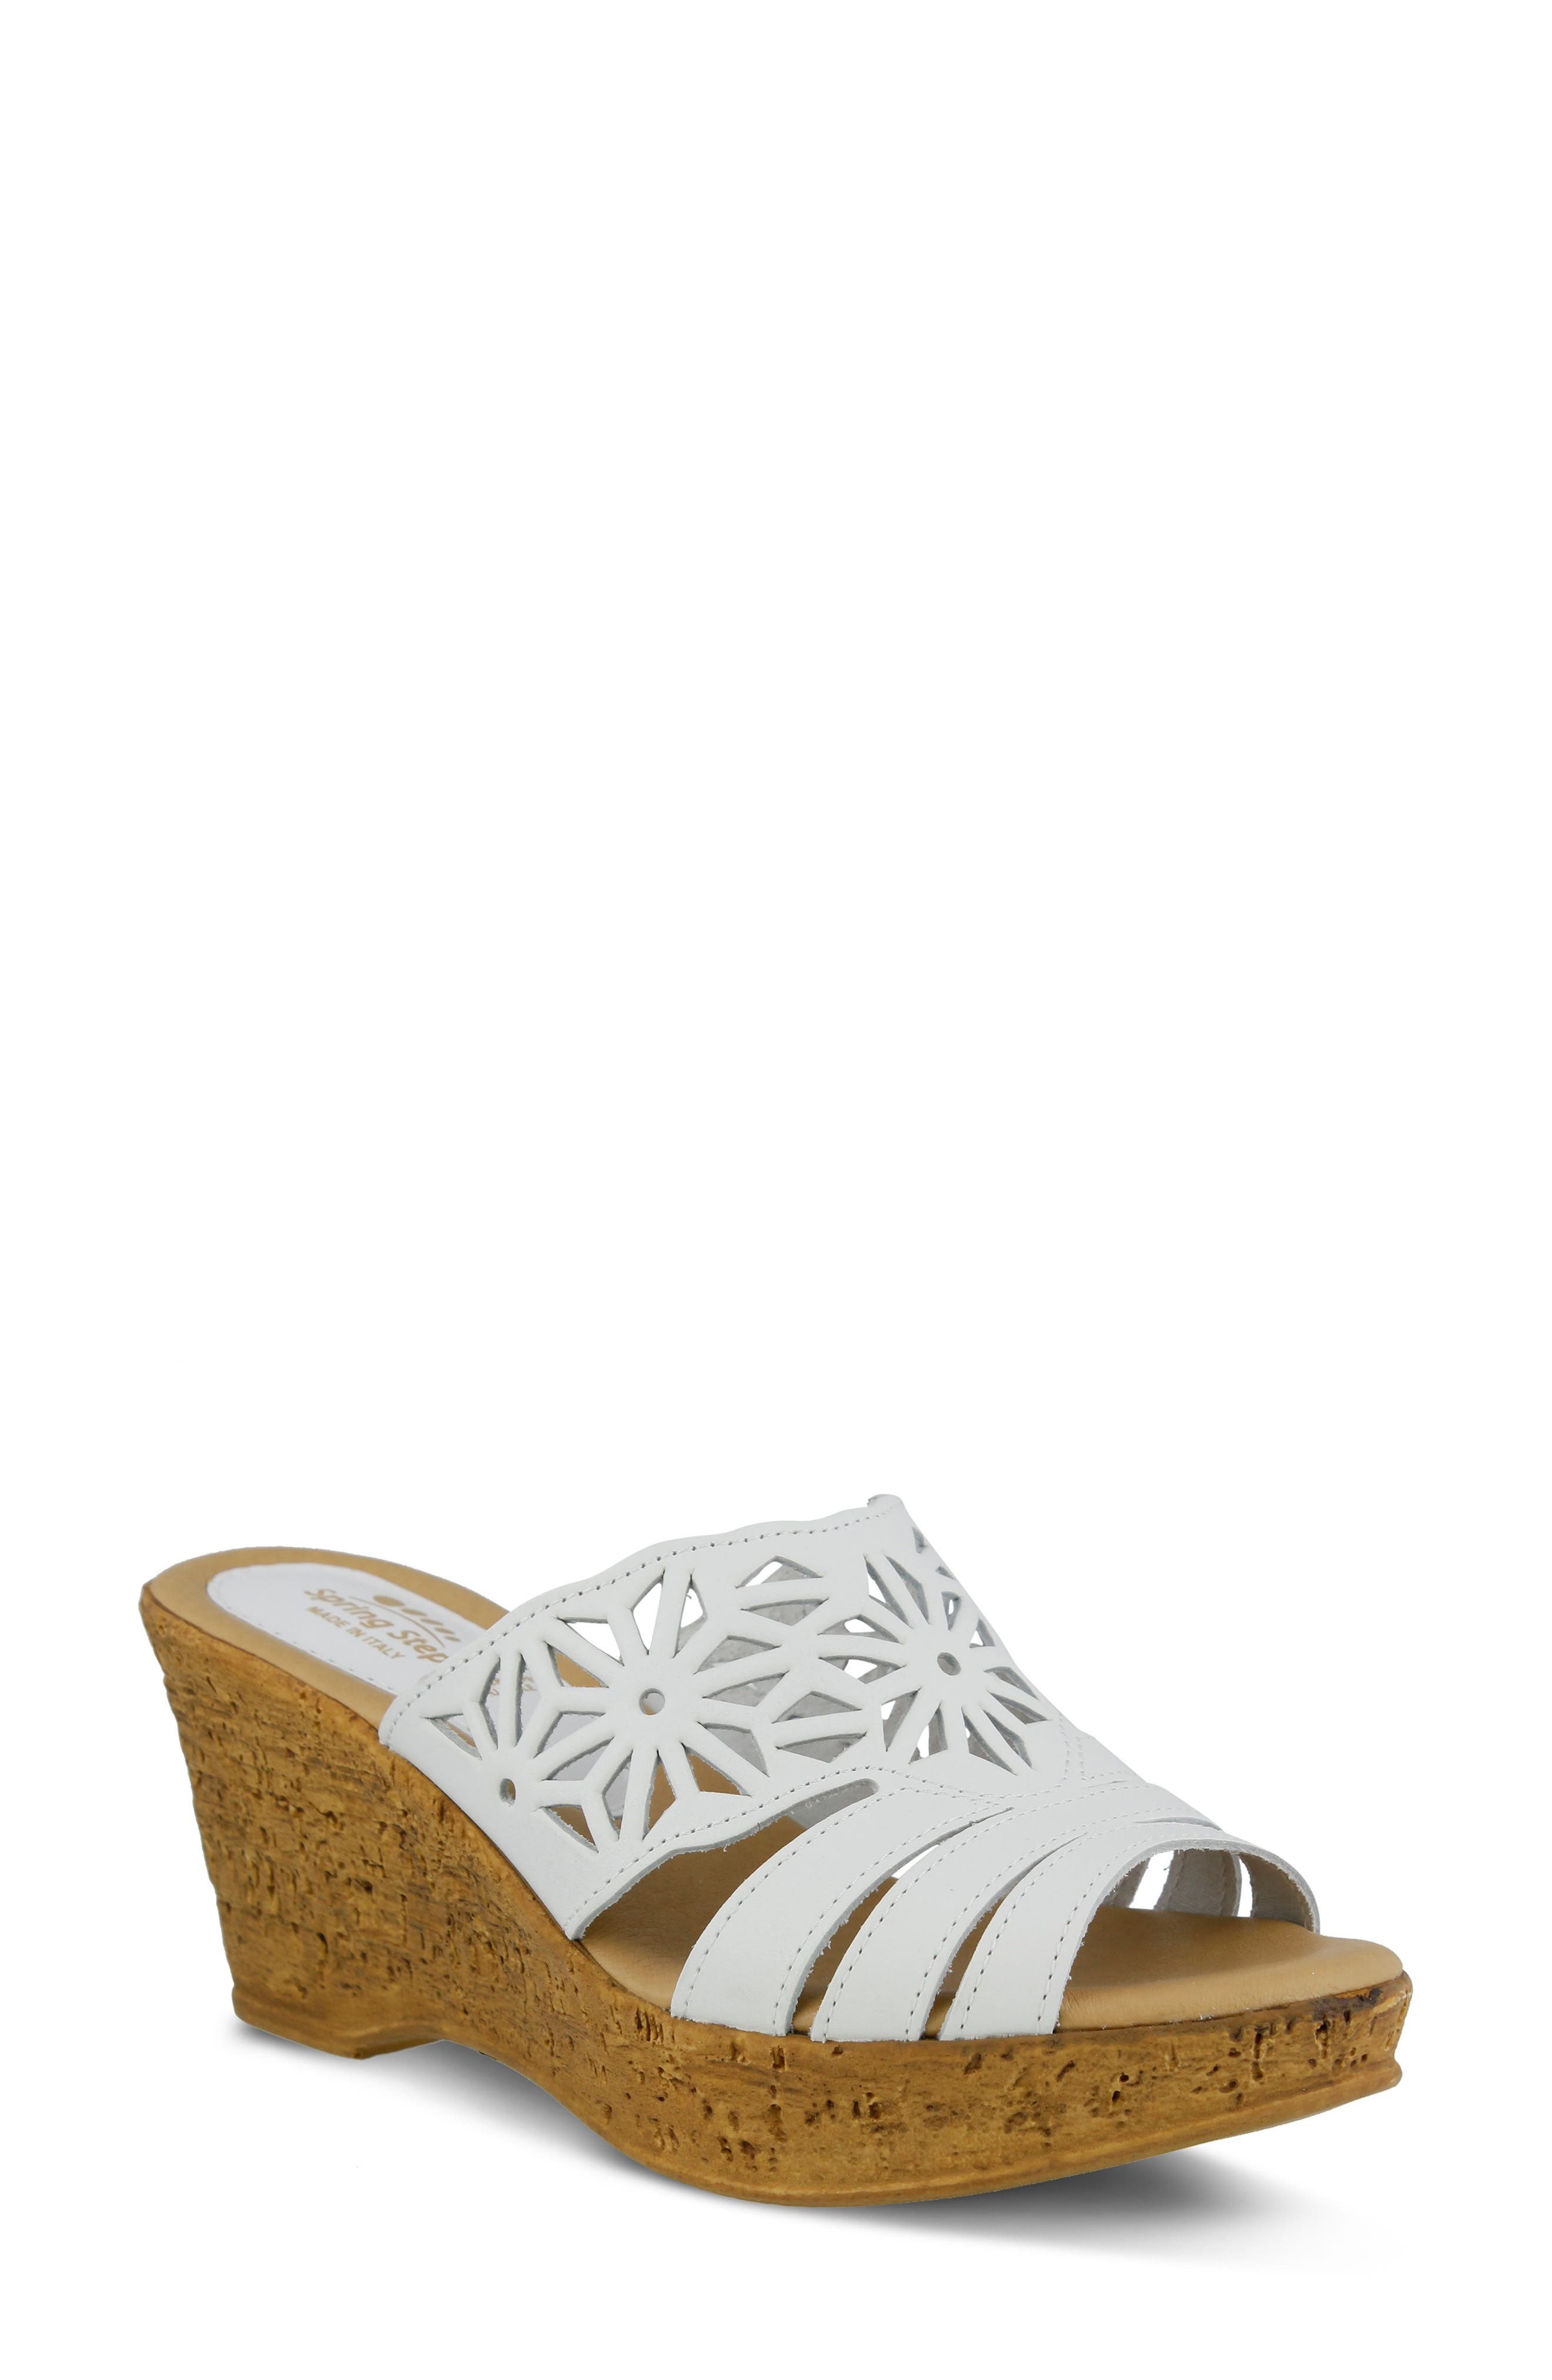 Dora Wedge Sandal,                         Main,                         color, WHITE LEATHER